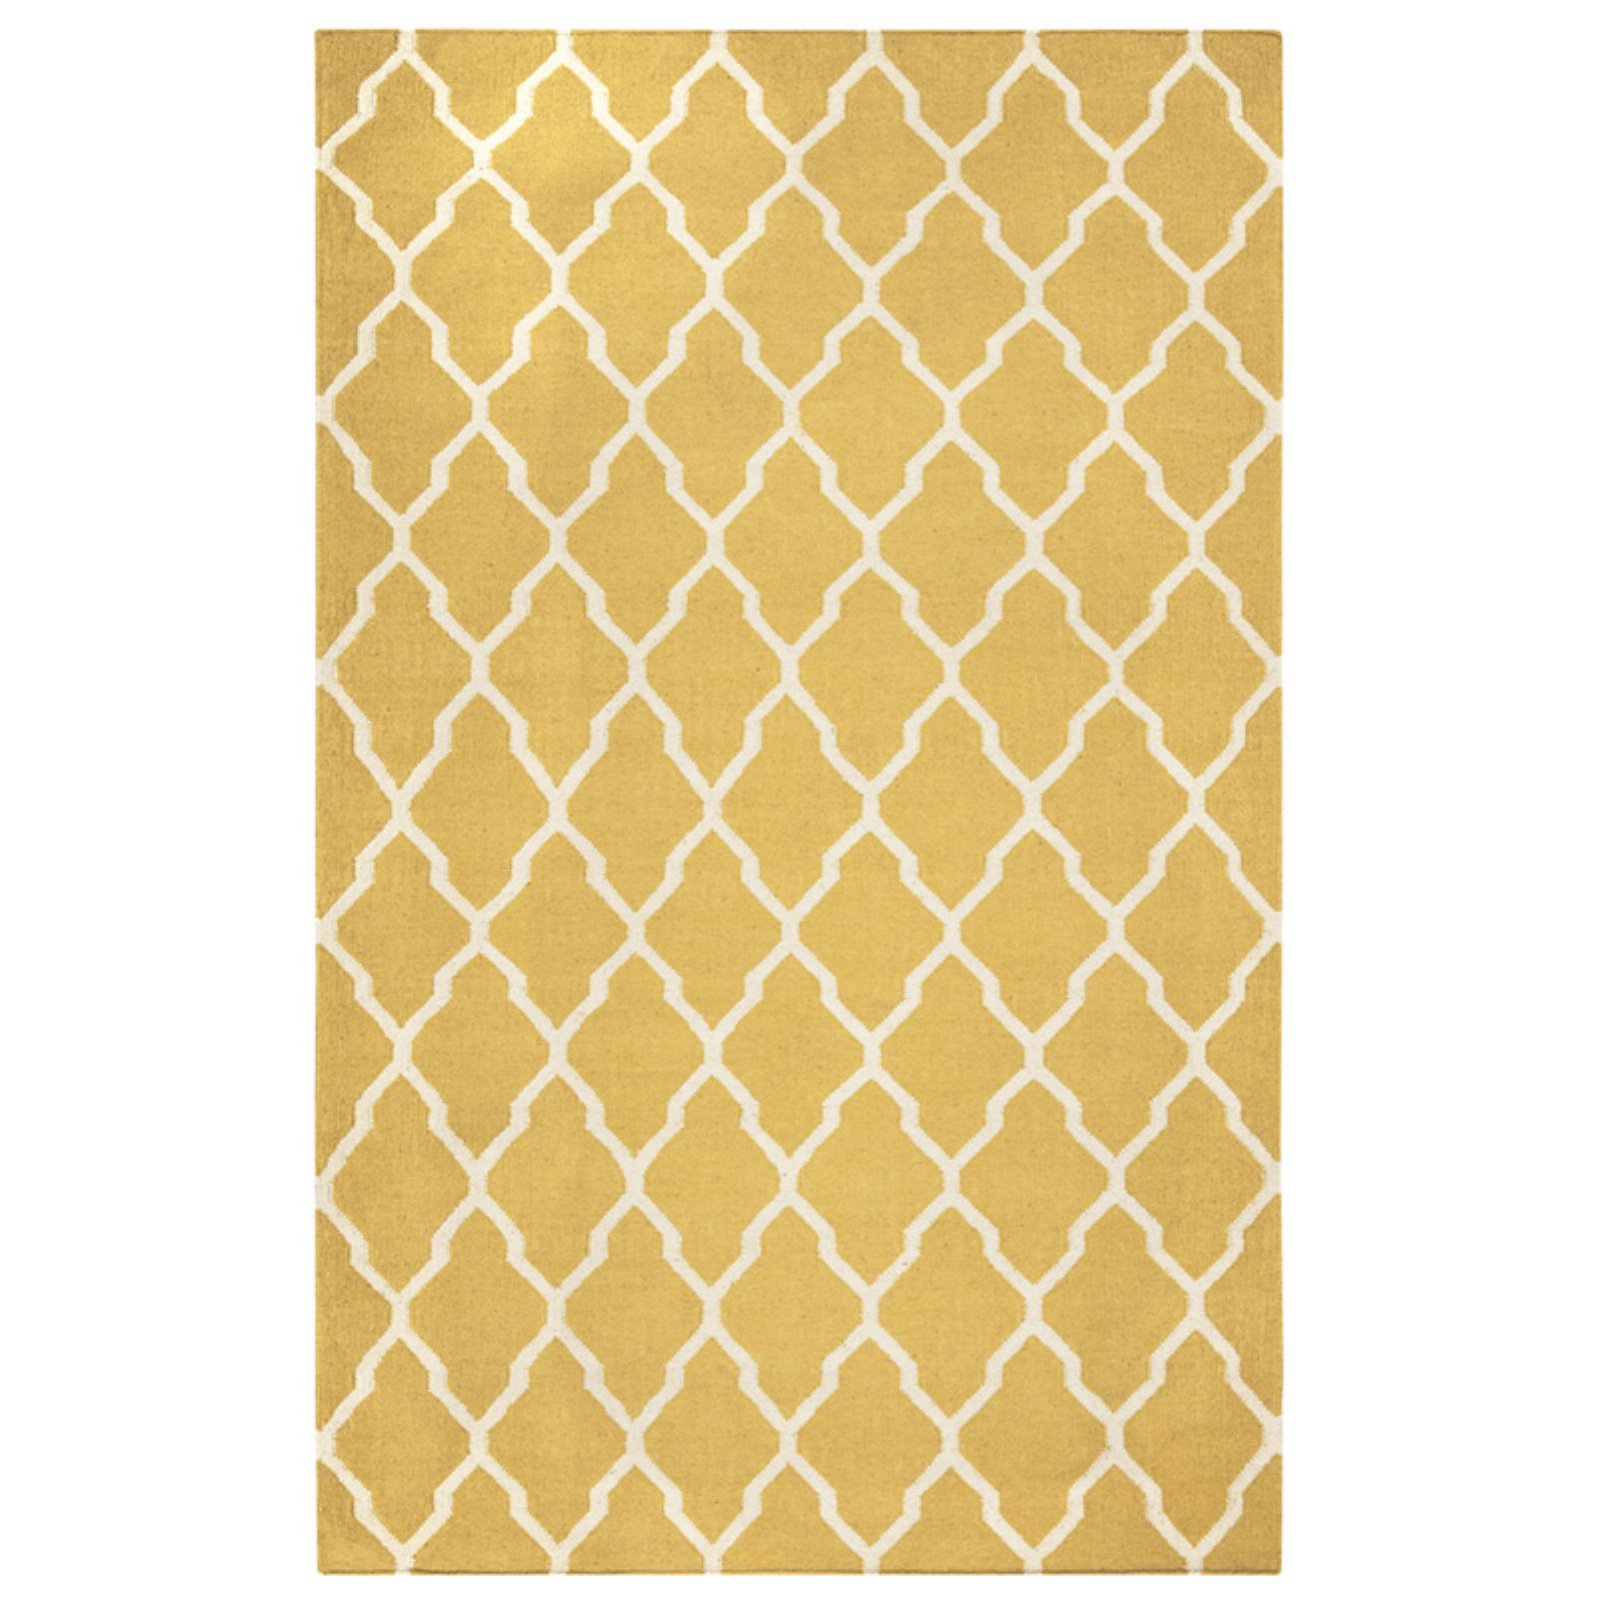 Rizzy Home Swing Hand-Woven Area Rug 8 Ft. X 10 Ft. Yellow